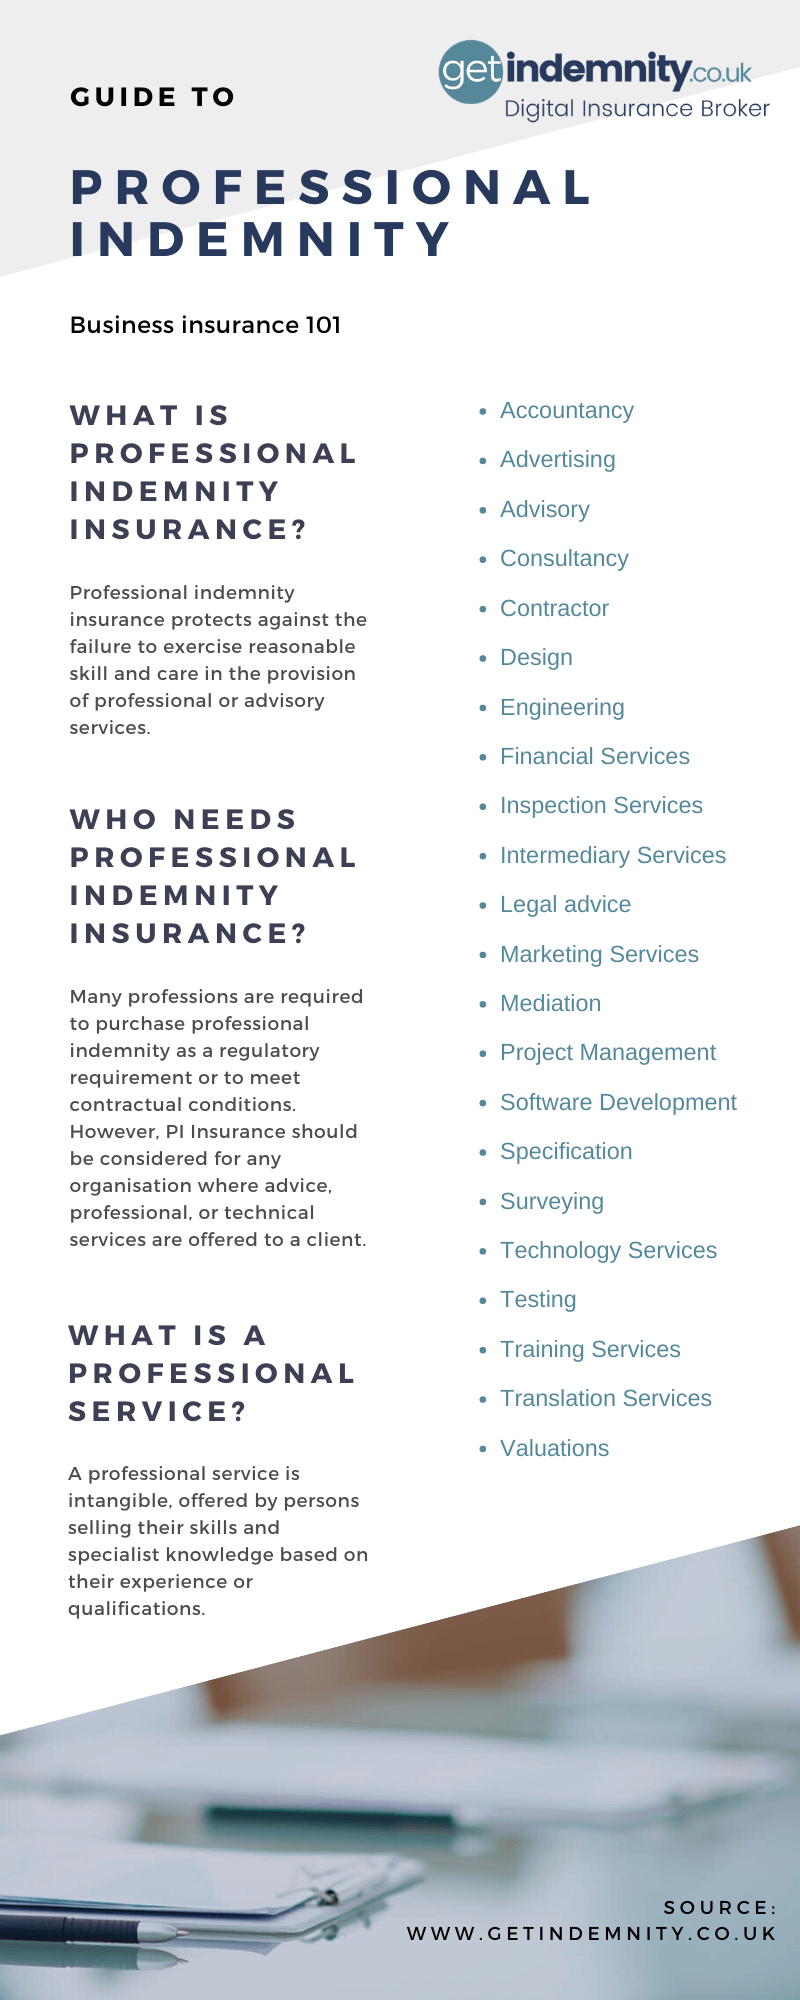 What Professional Indemnity Insurance? Infographic for Small Business